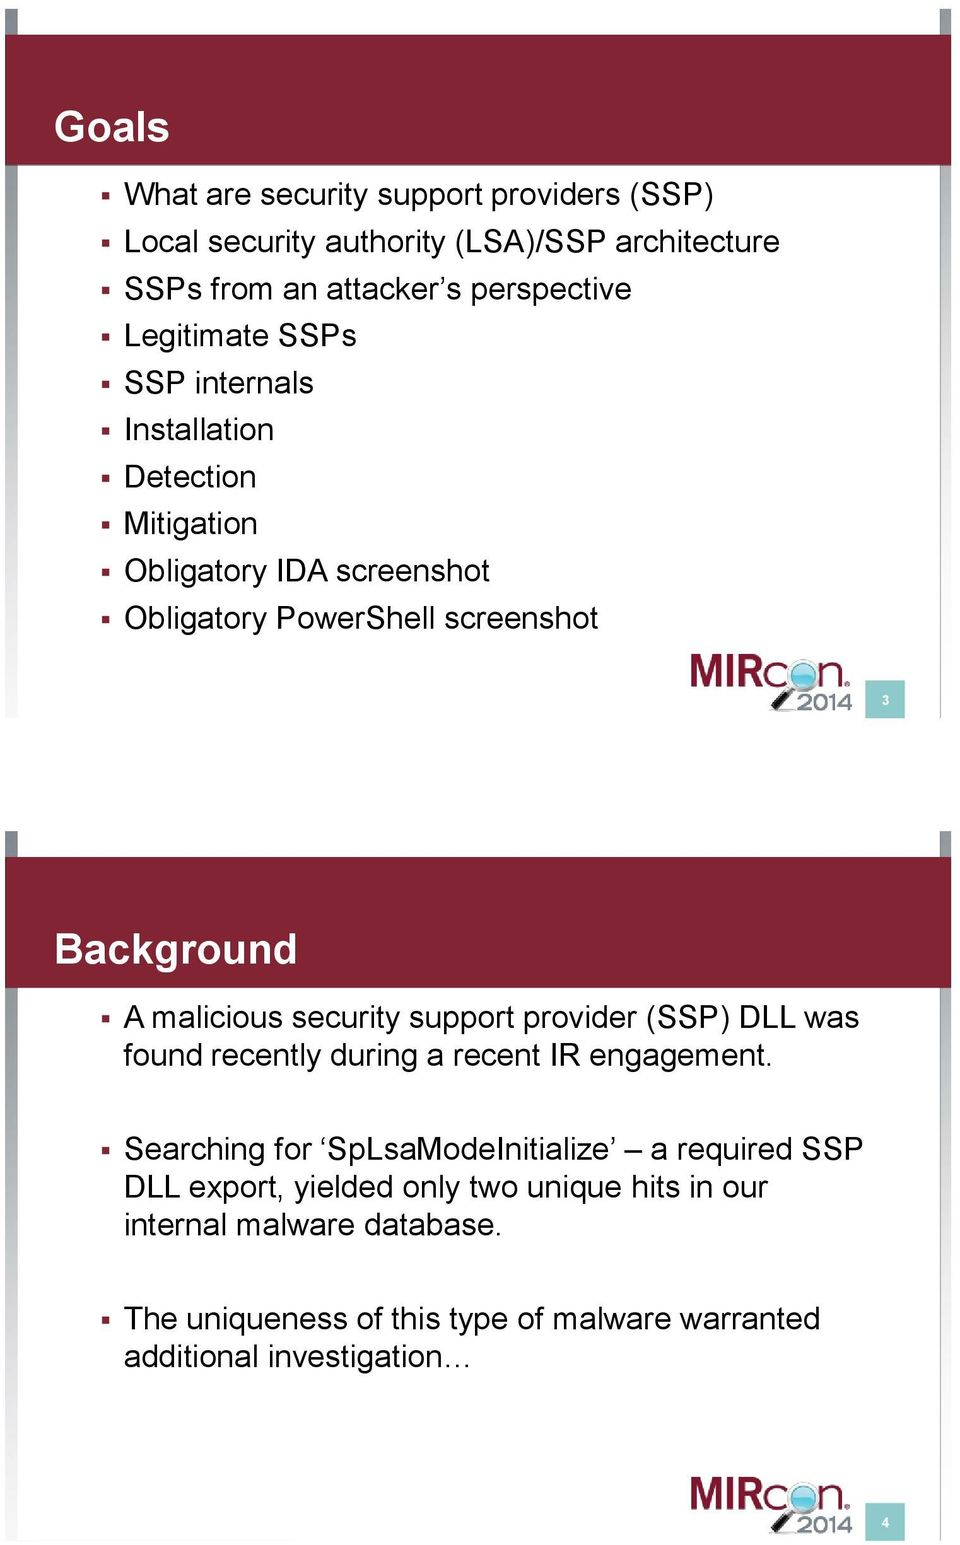 malicious security support provider (SSP) DLL was found recently during a recent IR engagement.